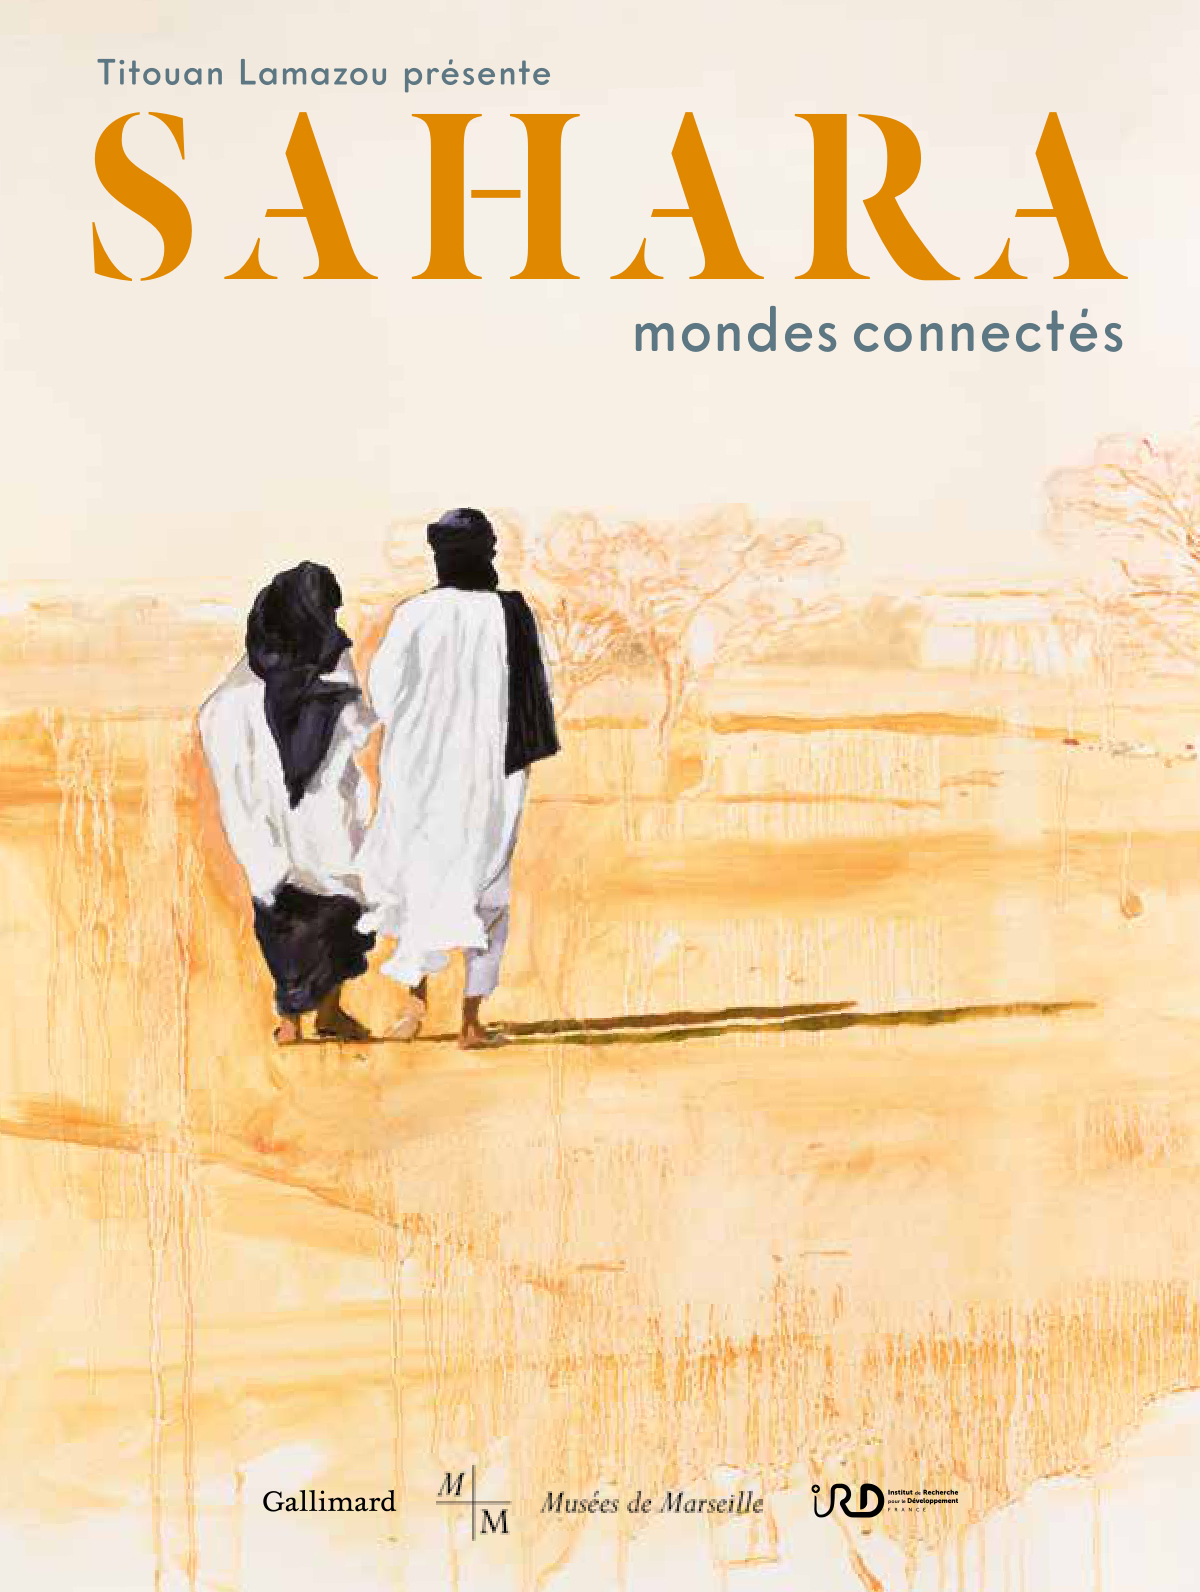 SAHARA, MONDES CONNECTES